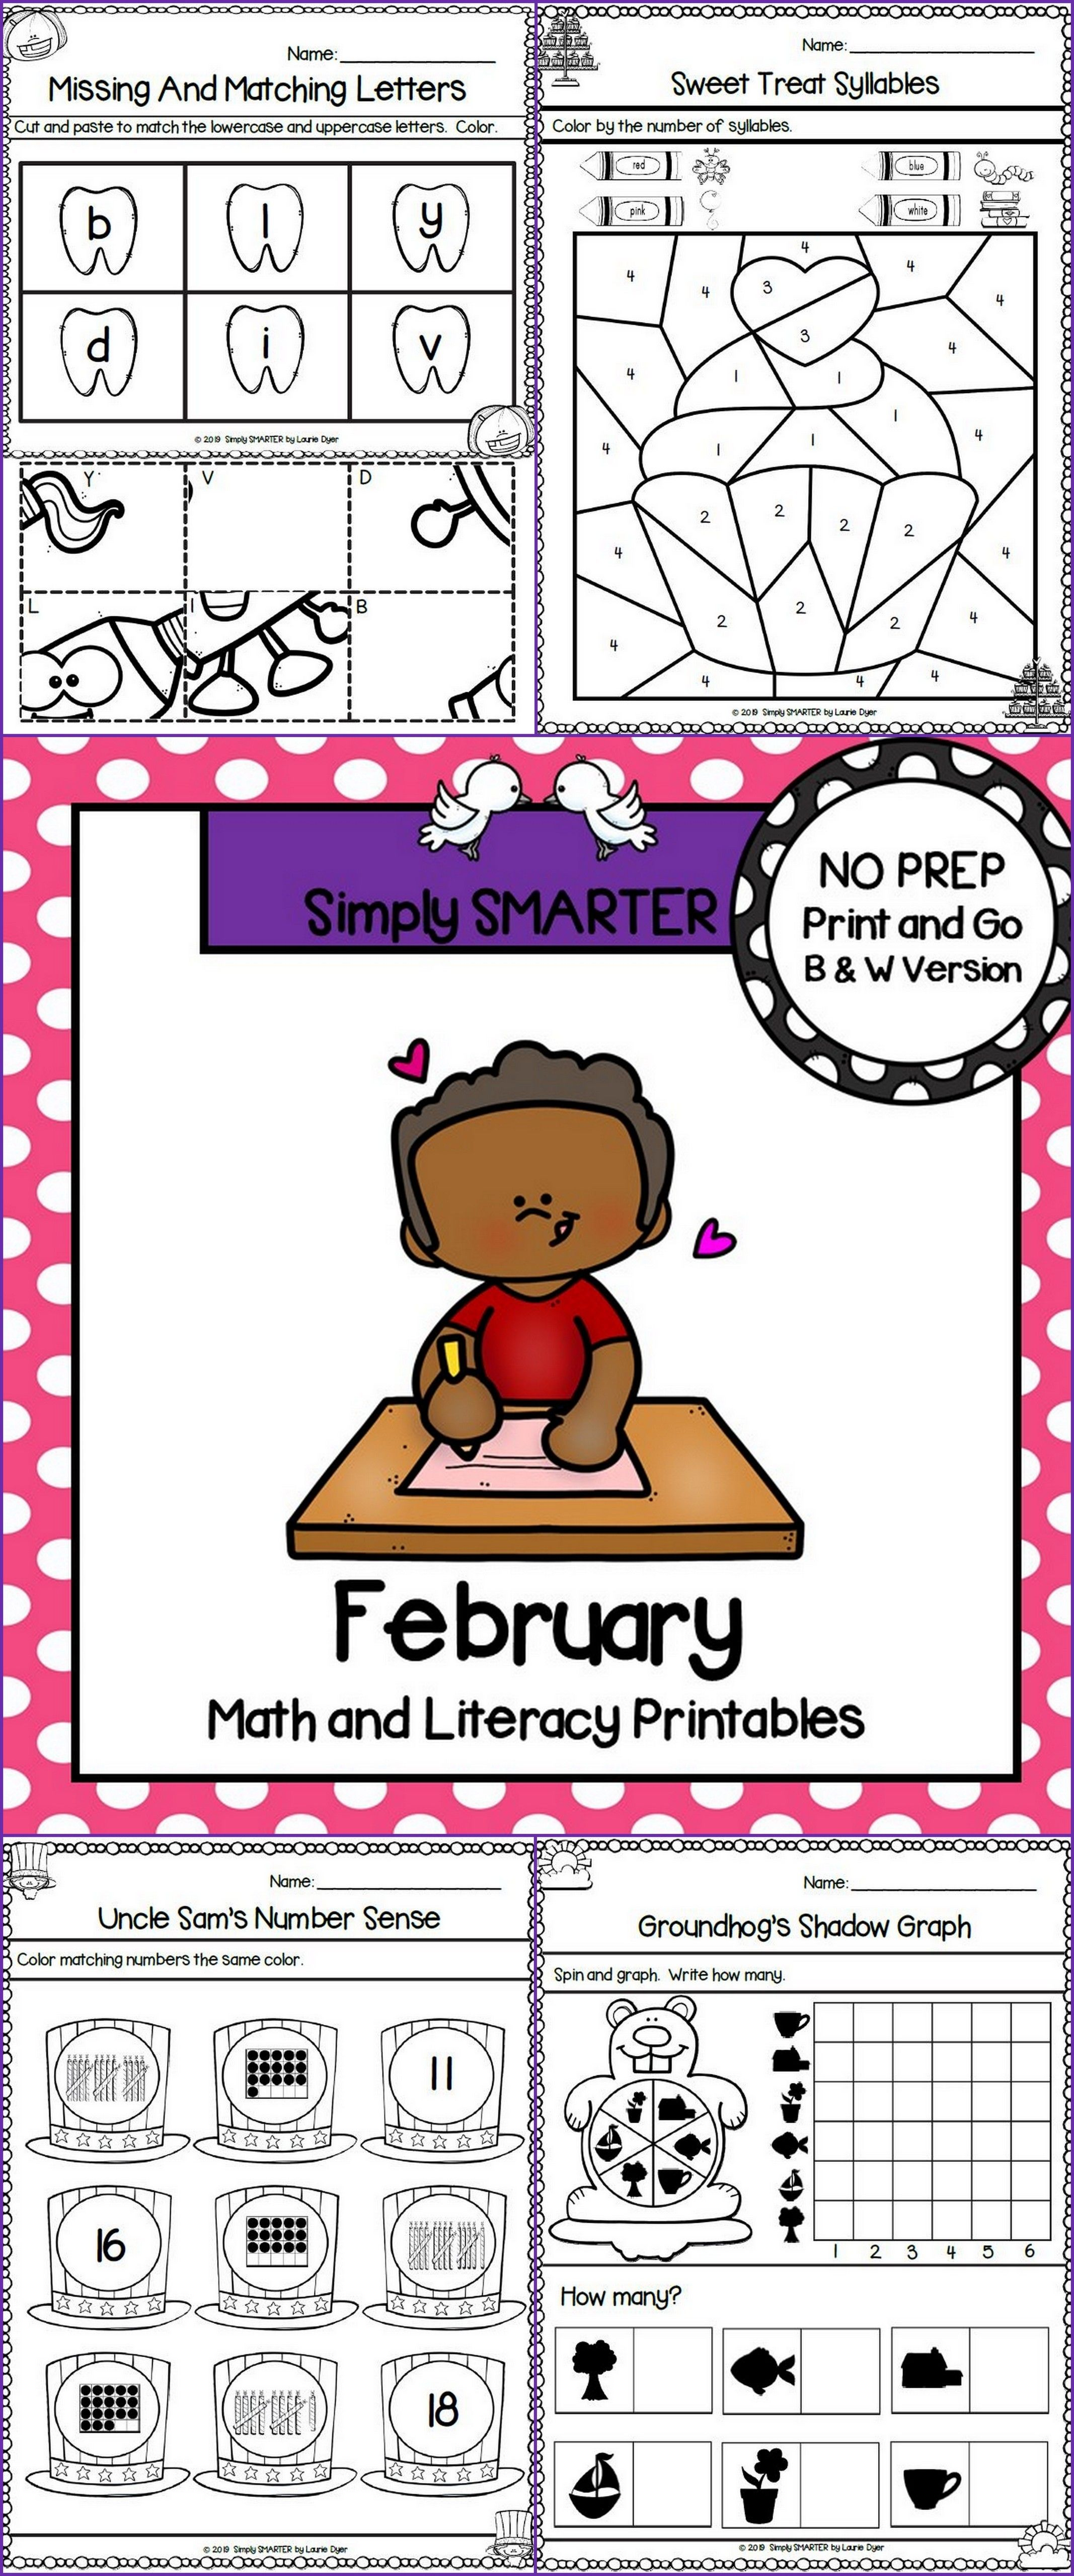 February Math And Literacy Printables And Activities For